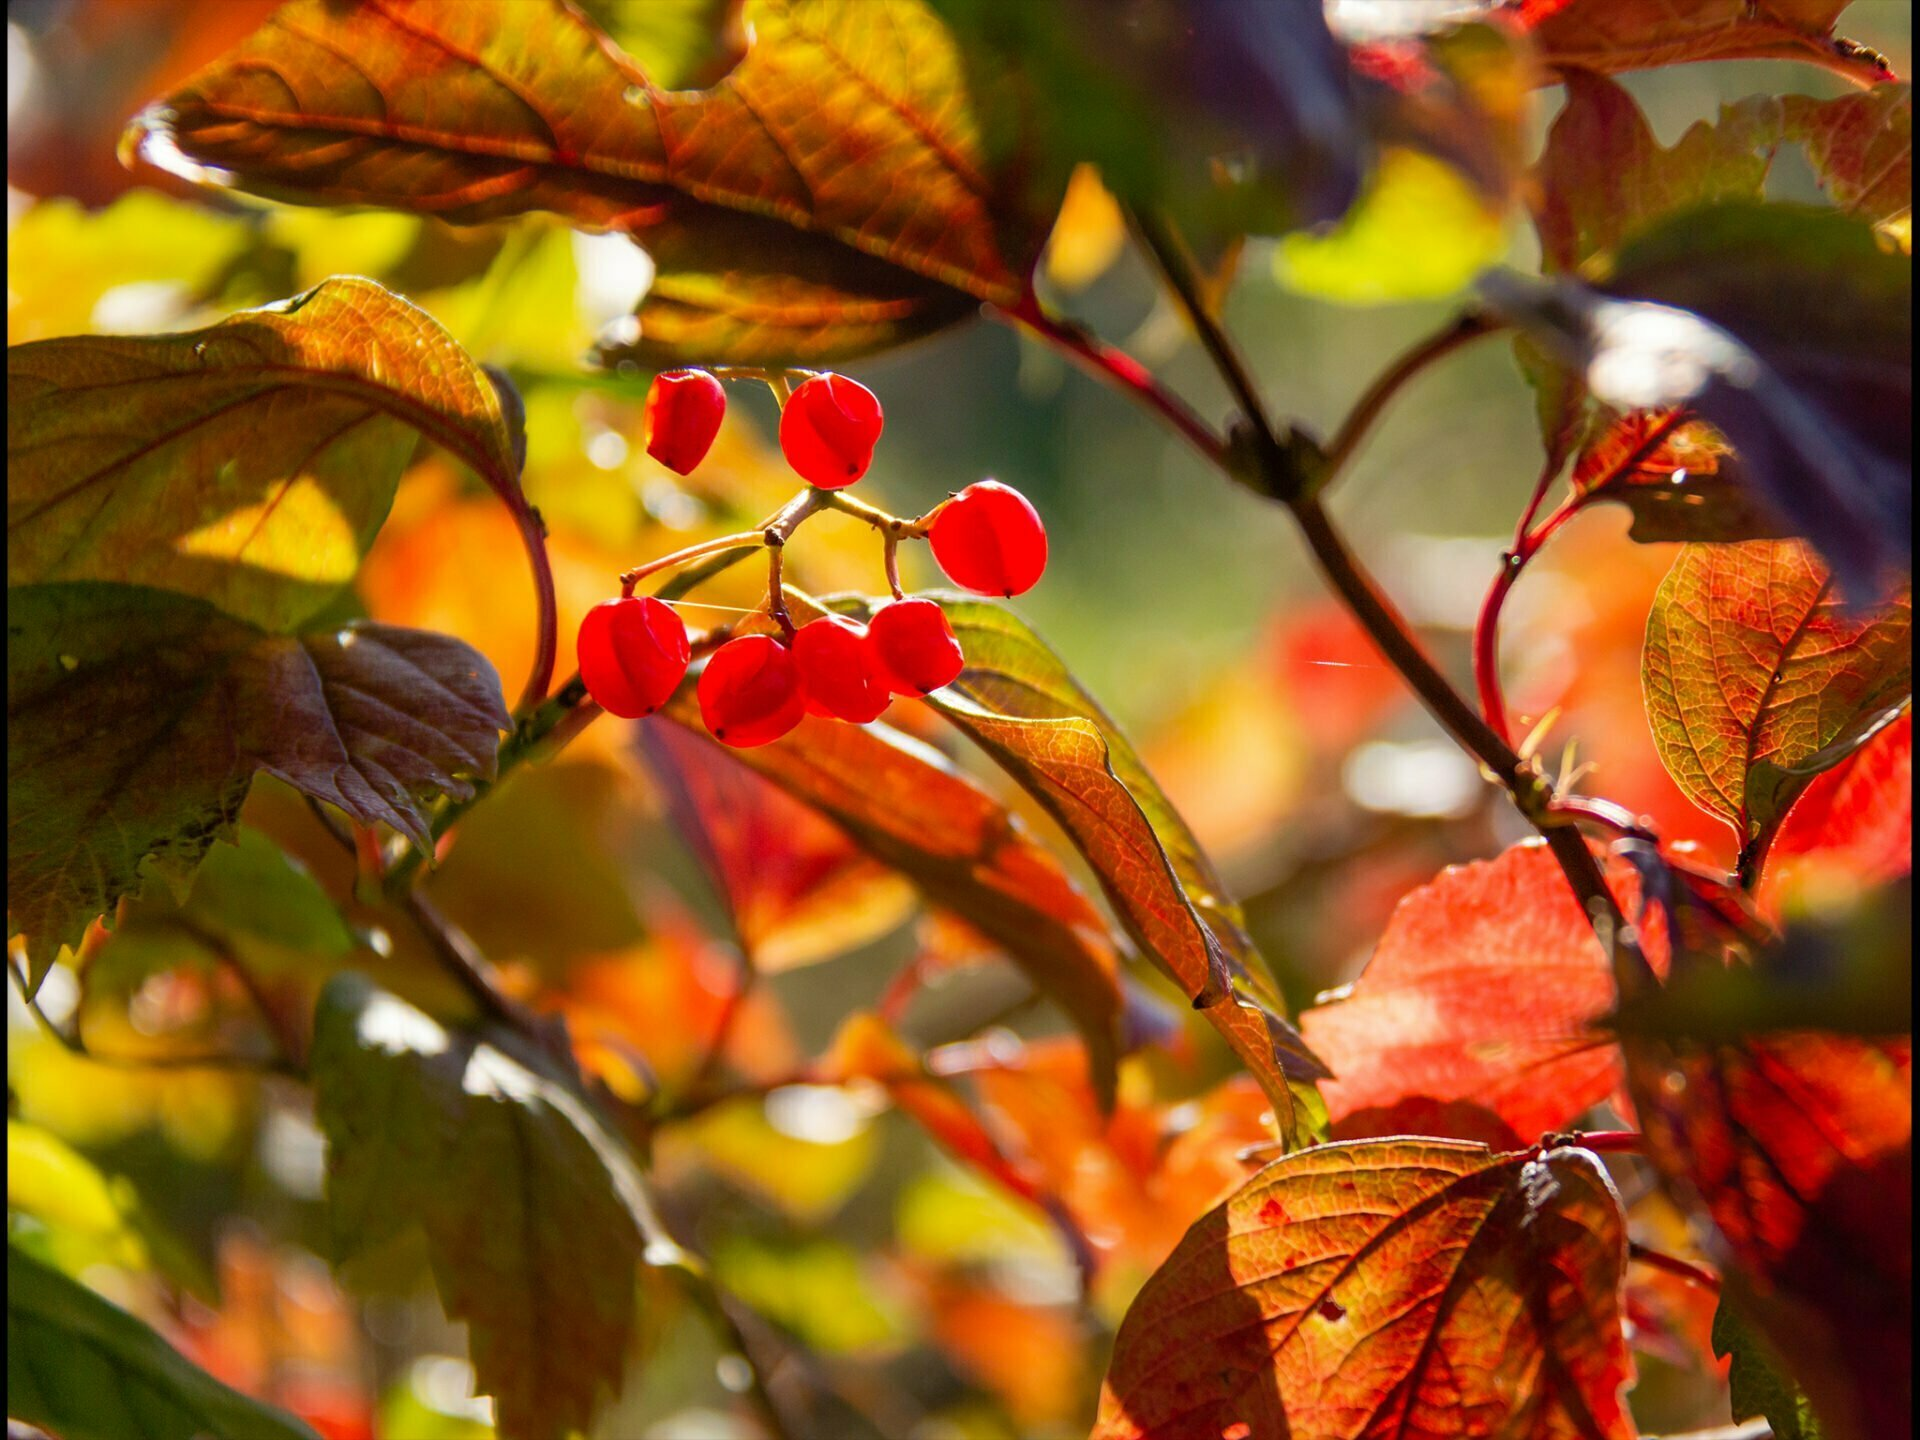 Autumn coloured leaves and red berries